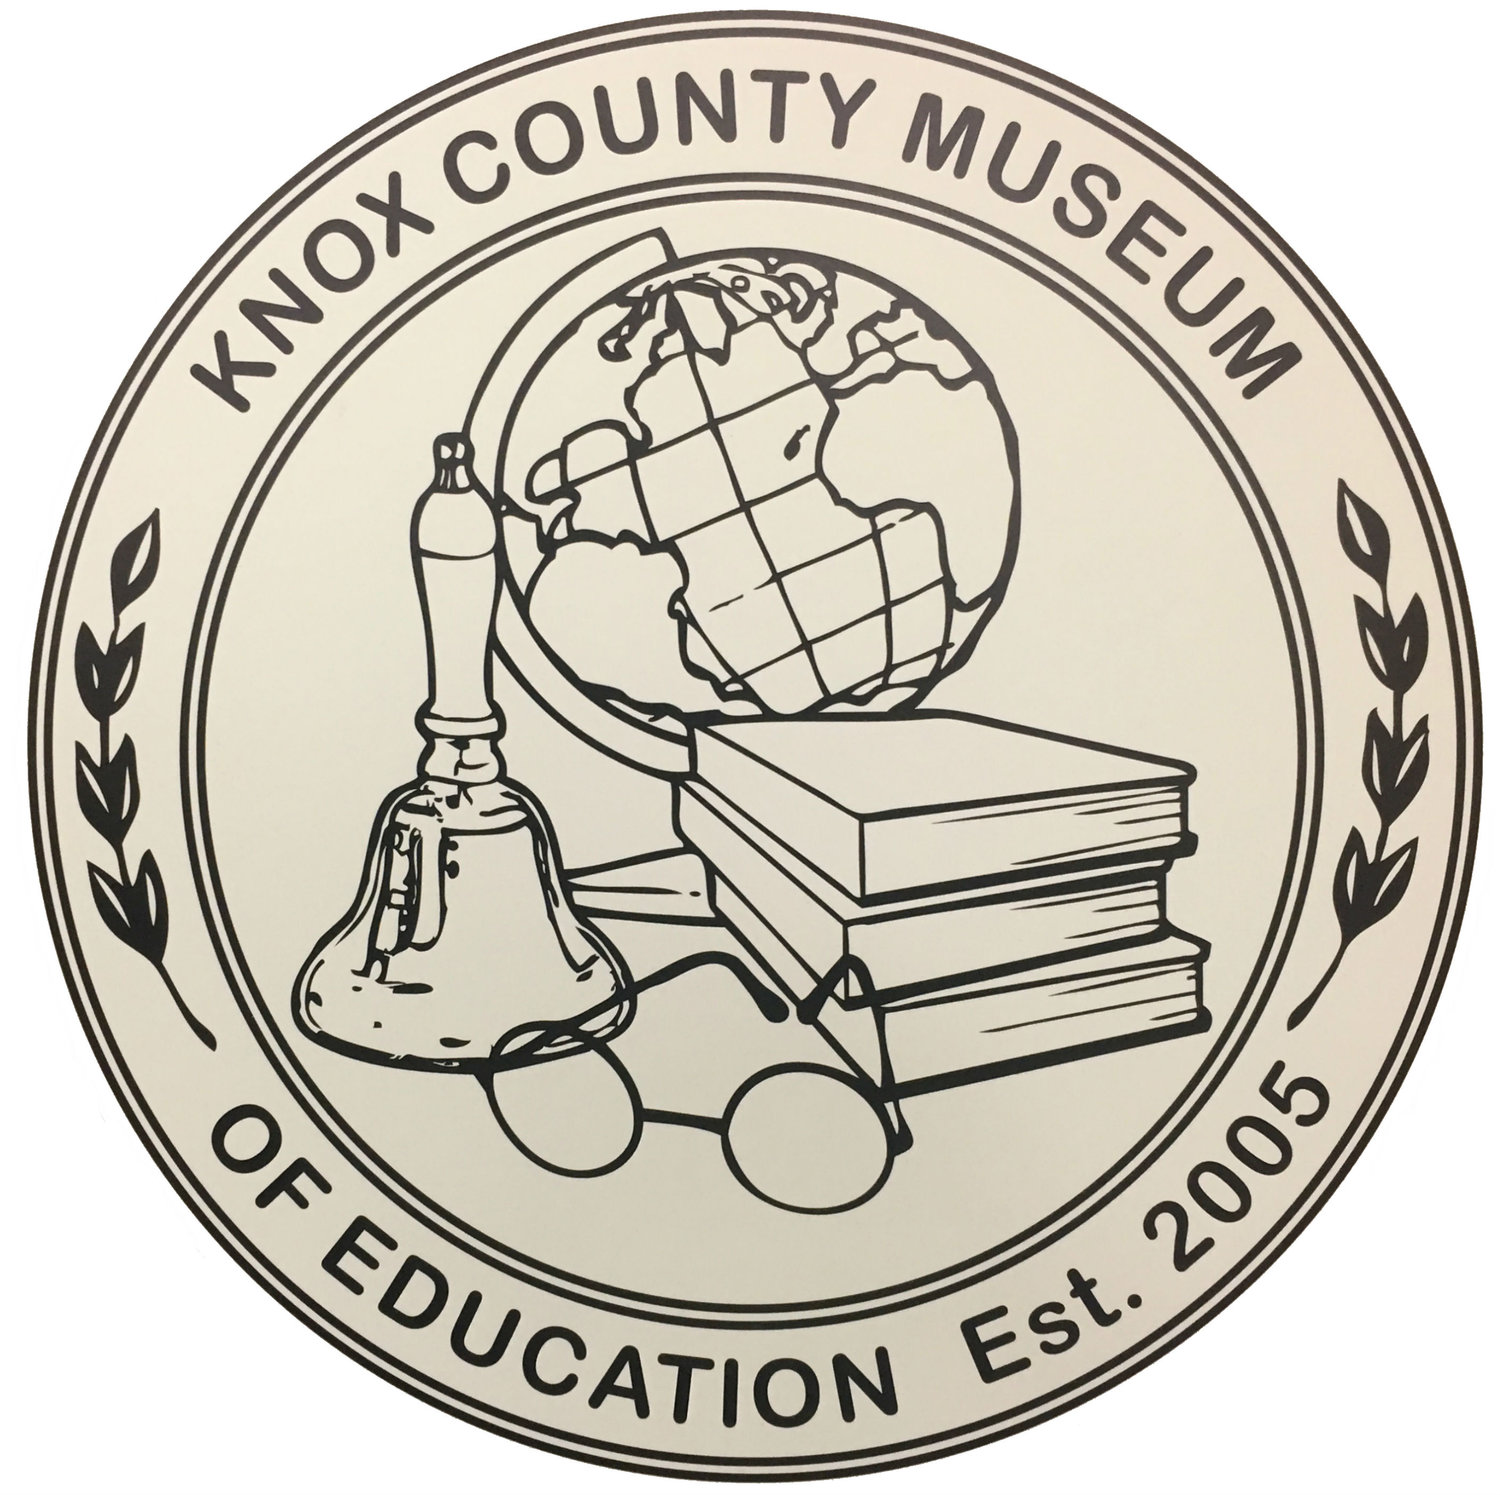 Knox County Museum of Education